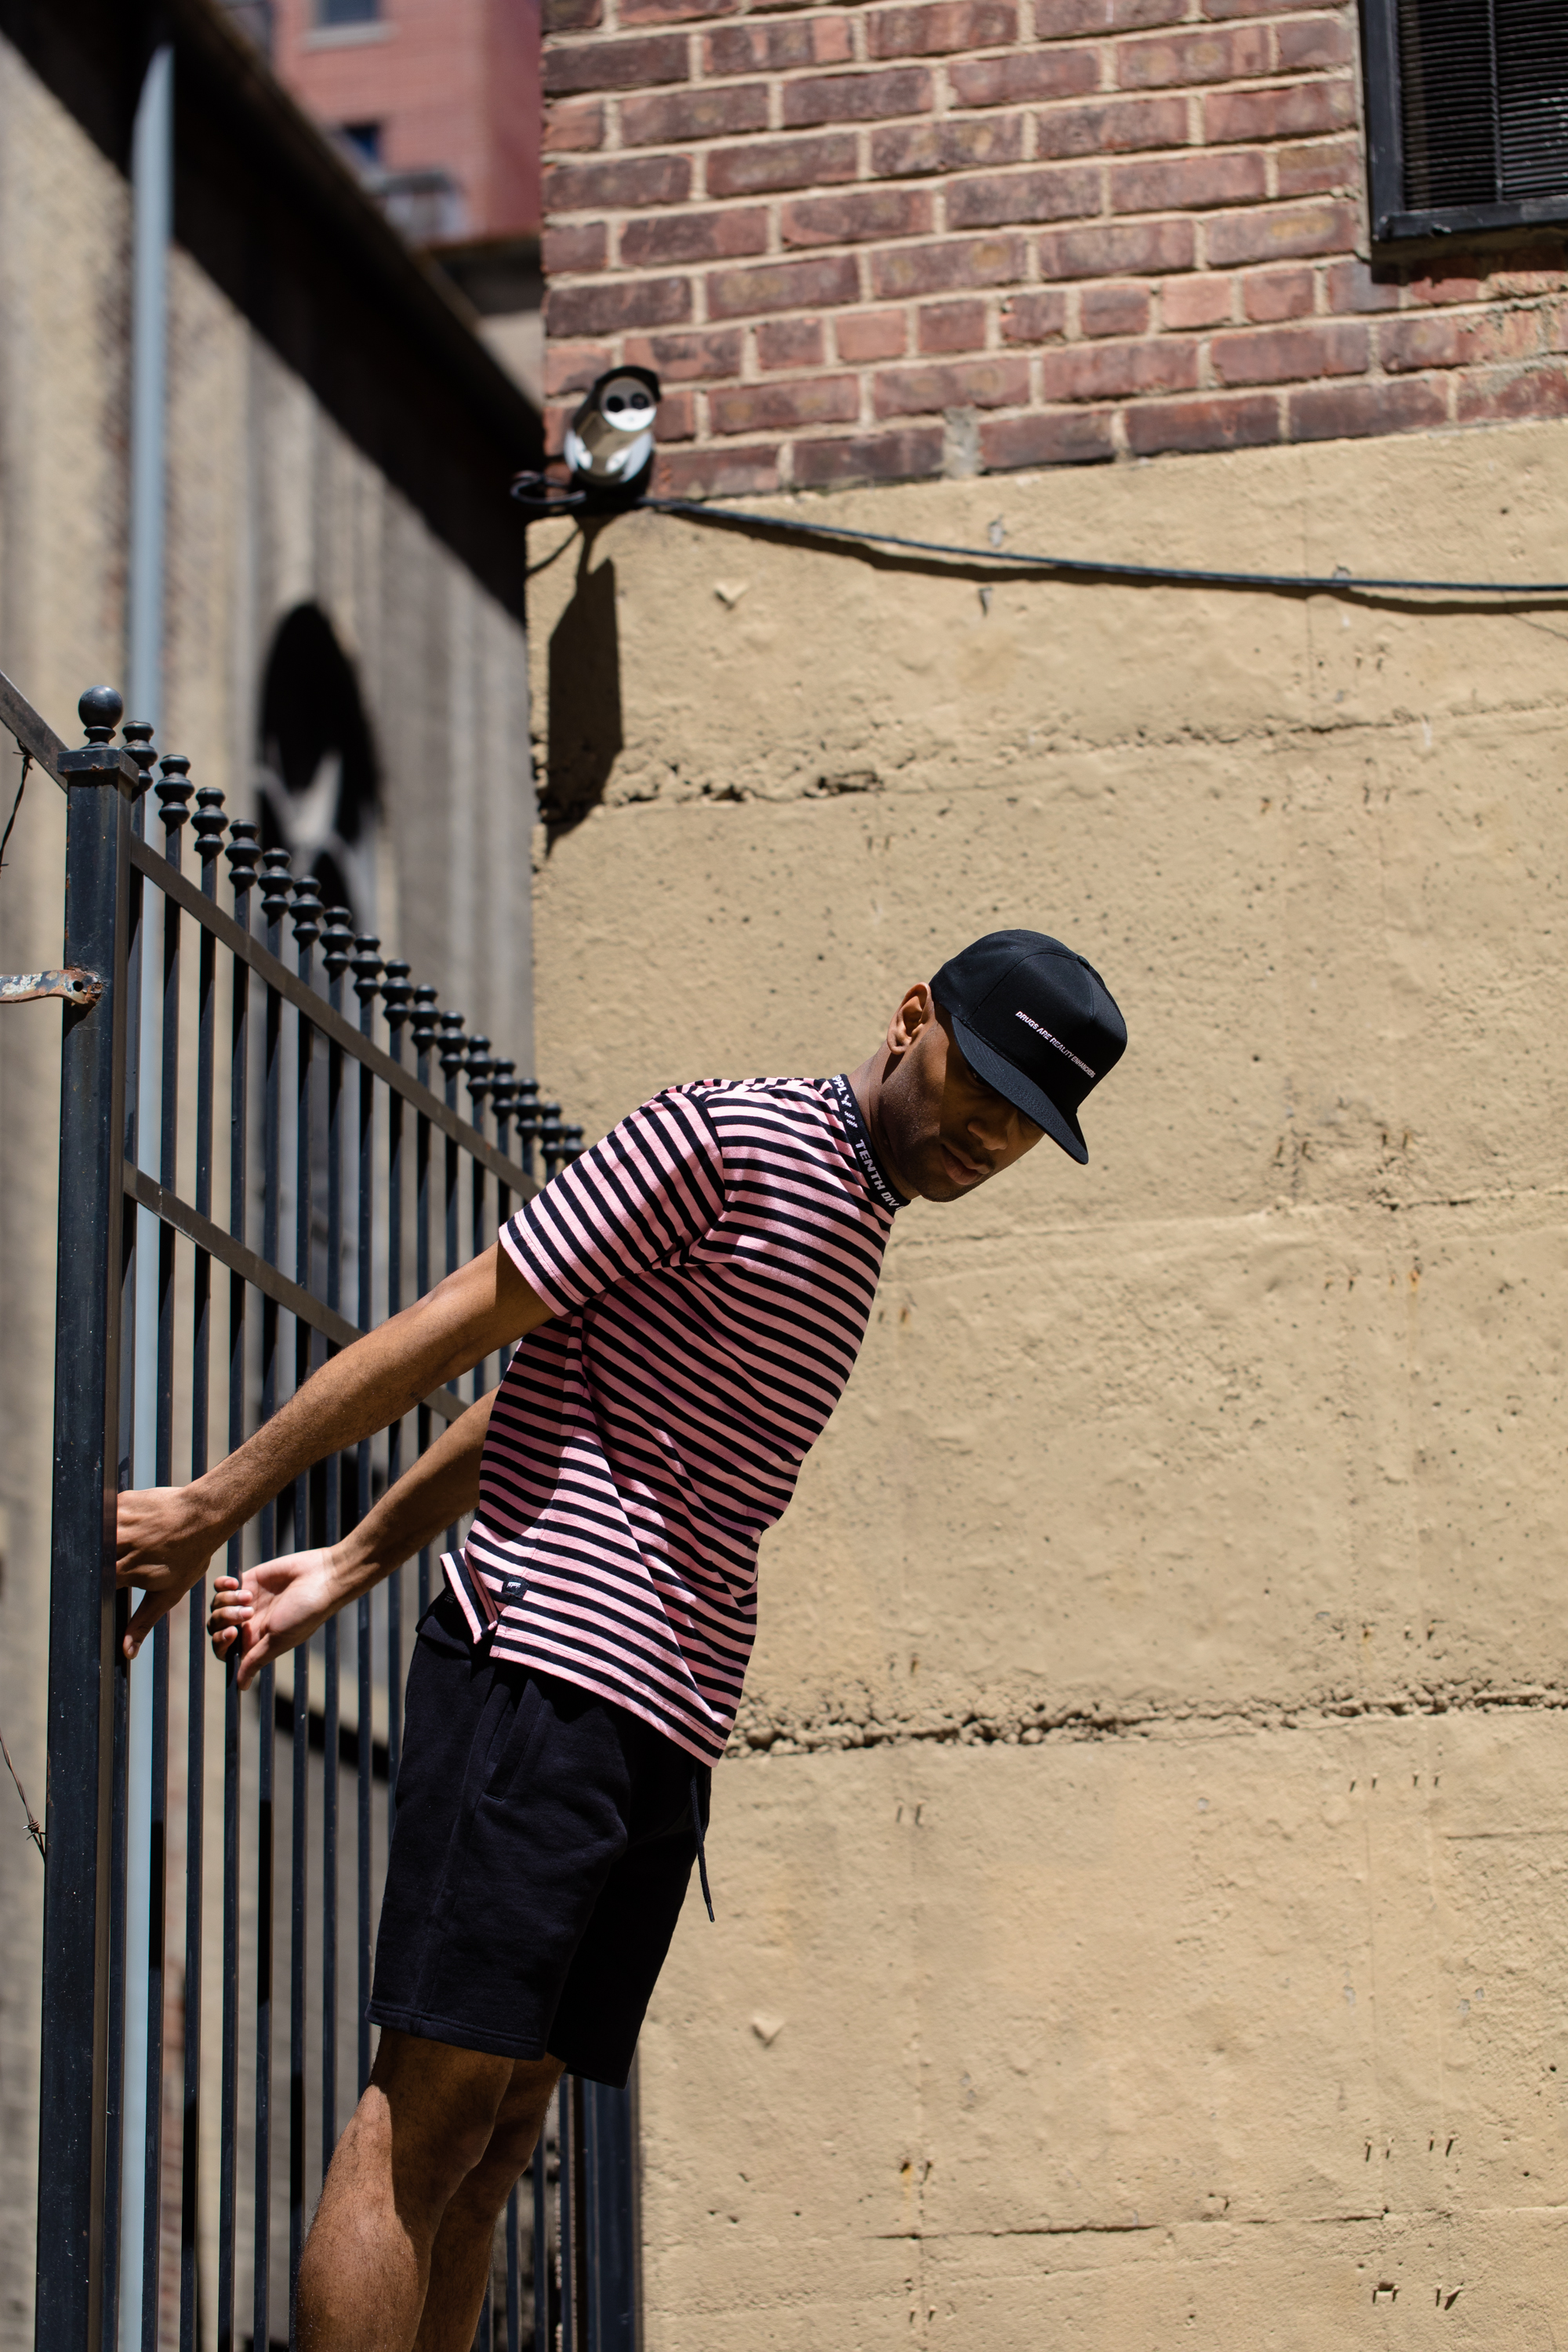 Cassell_2018.05.01 10Deep.Stripes-6886.jpg